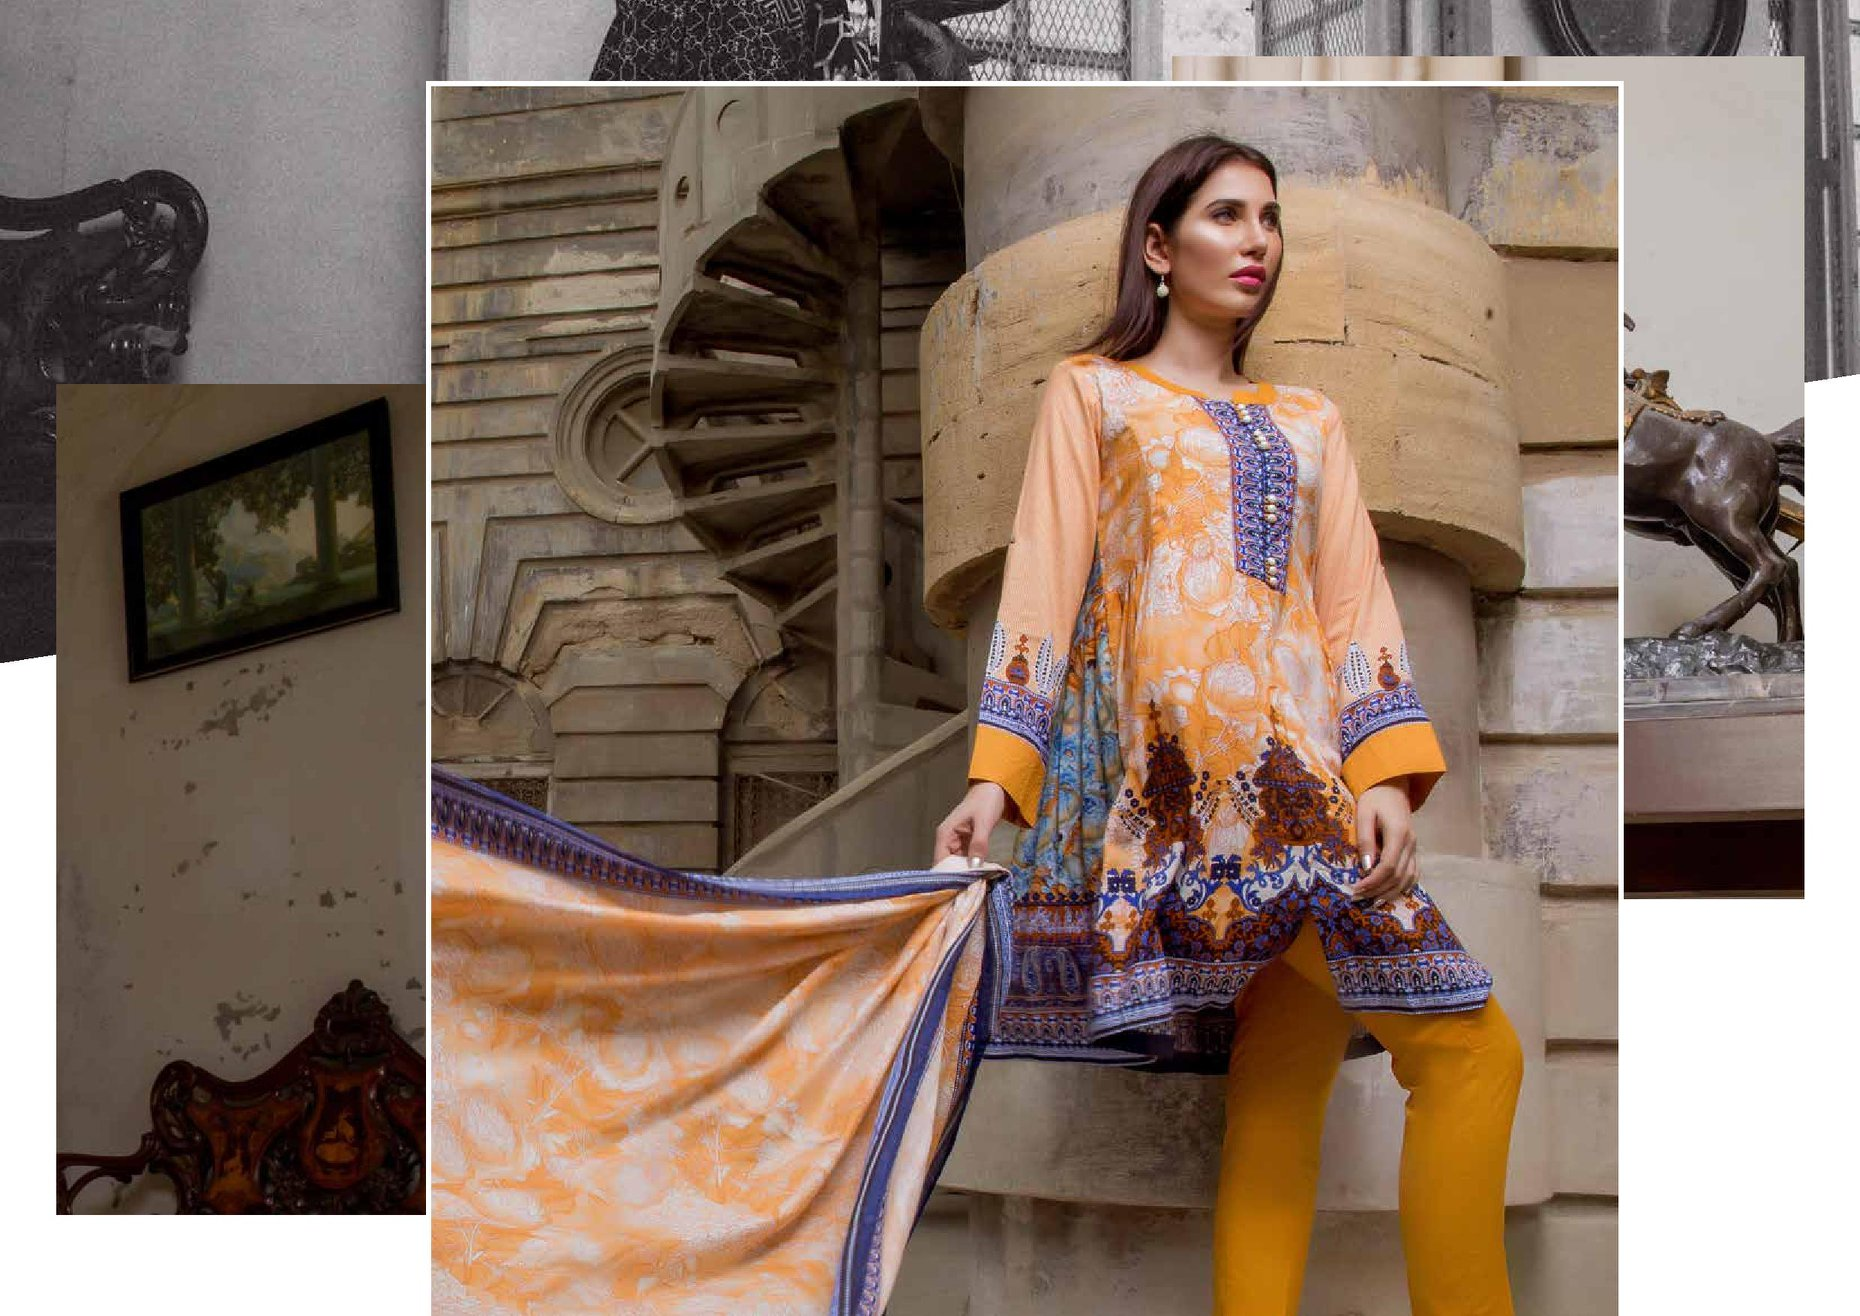 0654f26485 Ittehad German Linen Fall Winter 2018-19 consisting of wide range of  contemporary designs in eye catching colors. look here latest collection of  Ittehad ...